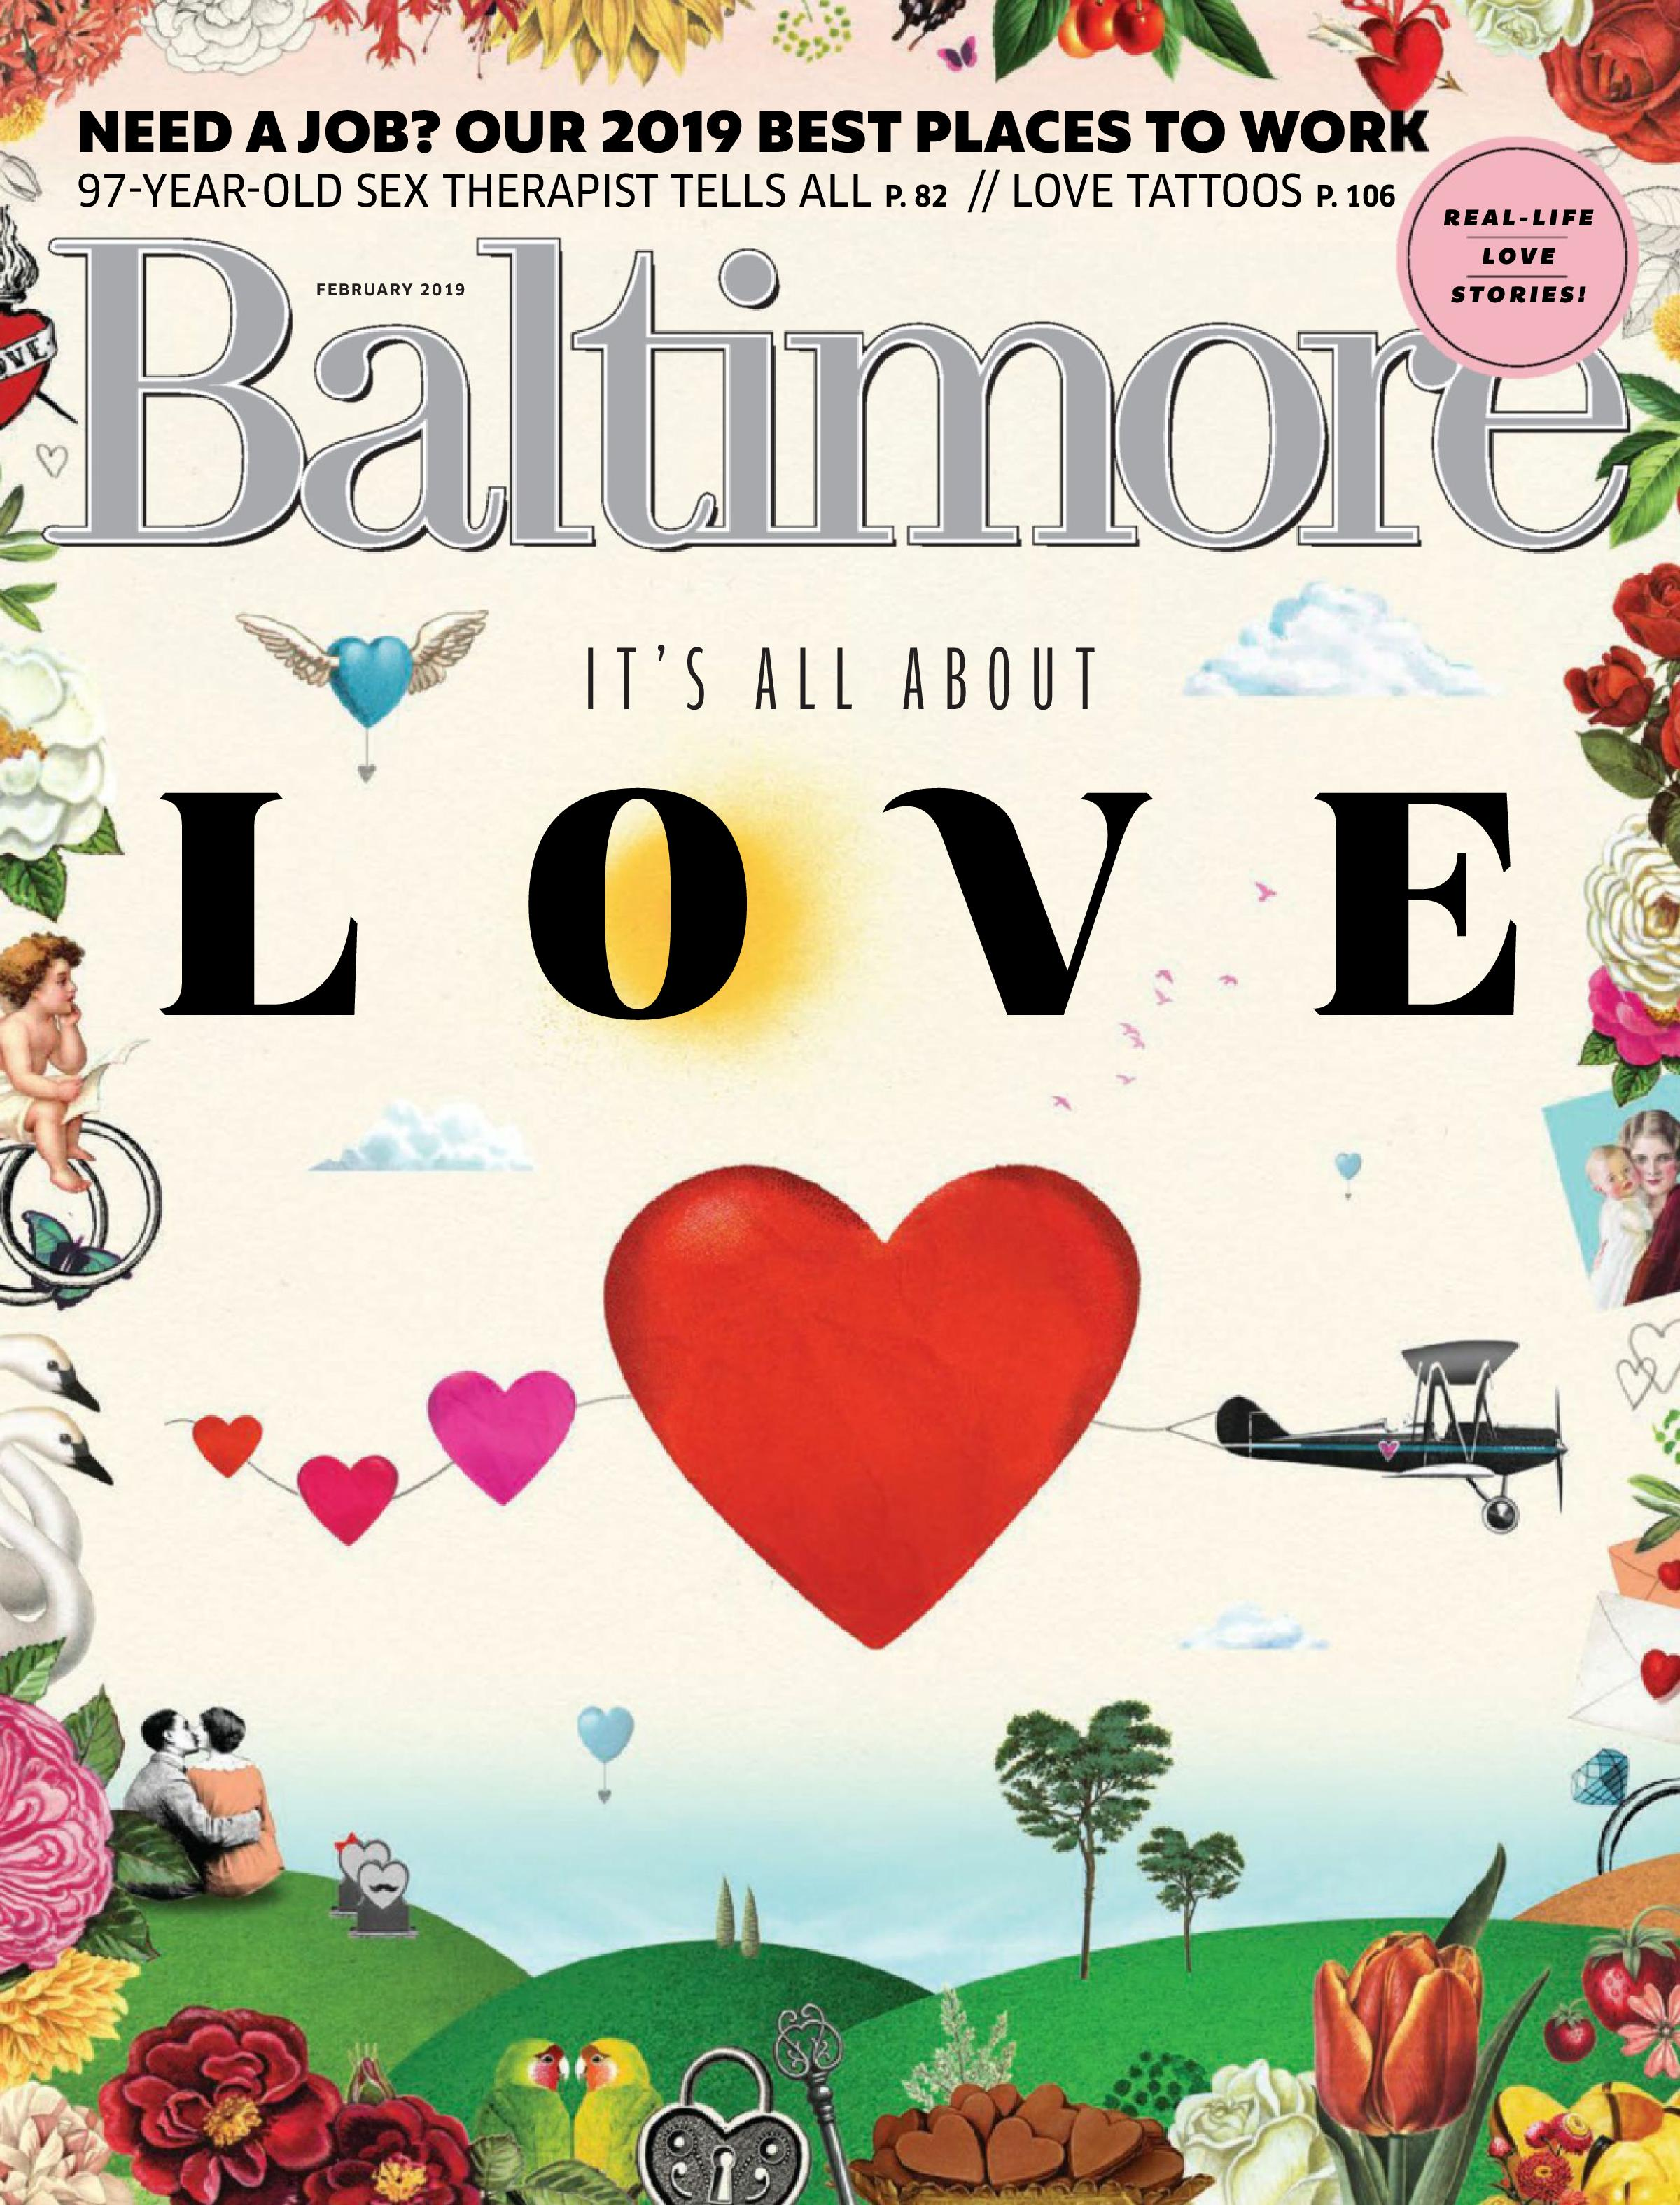 Baltimore Magazine - January 2019